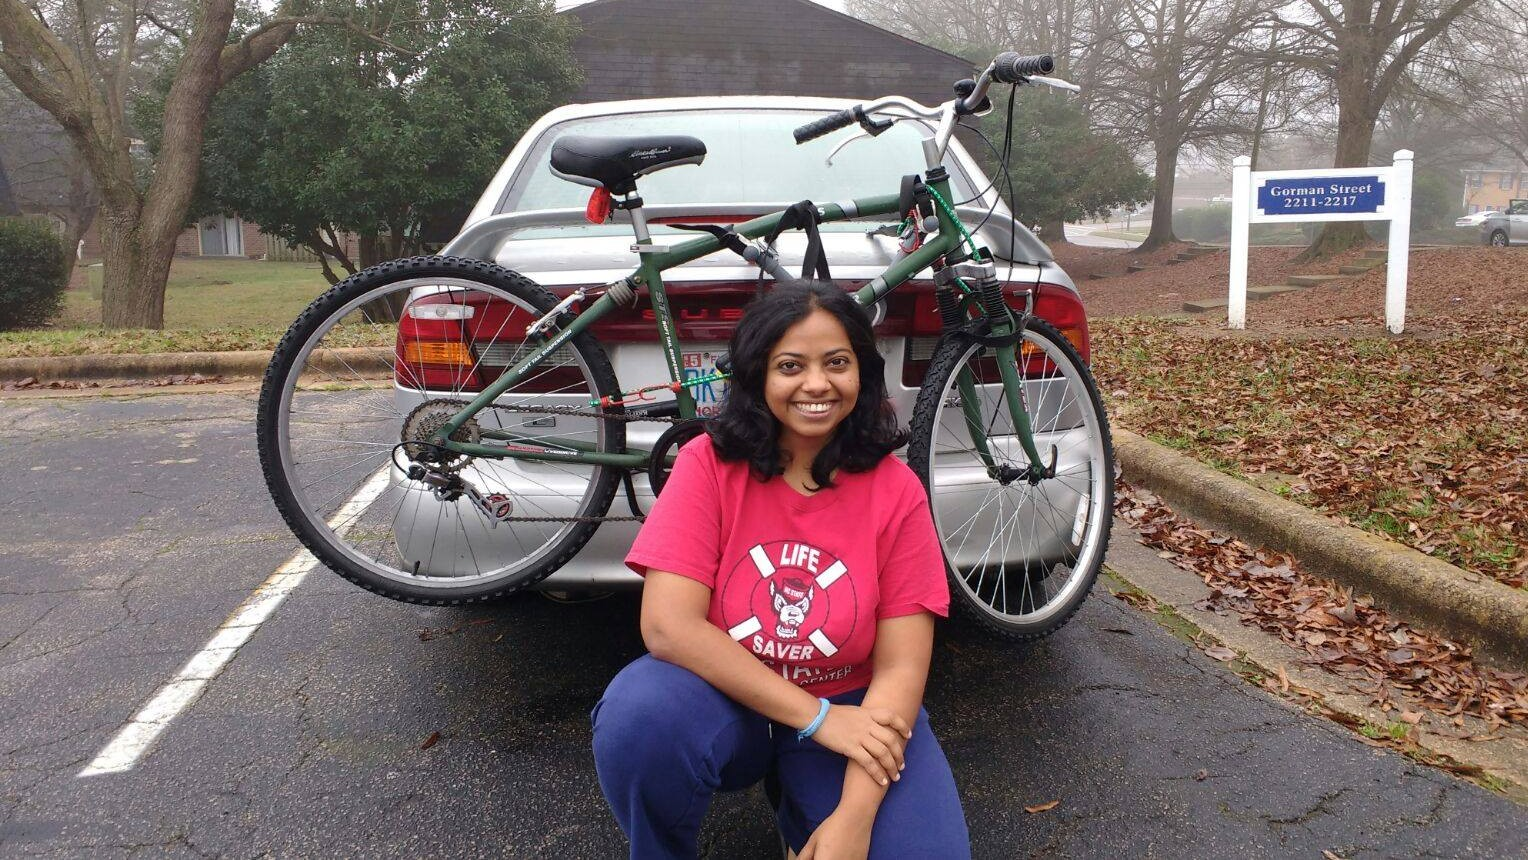 Haritha besid her car and bike